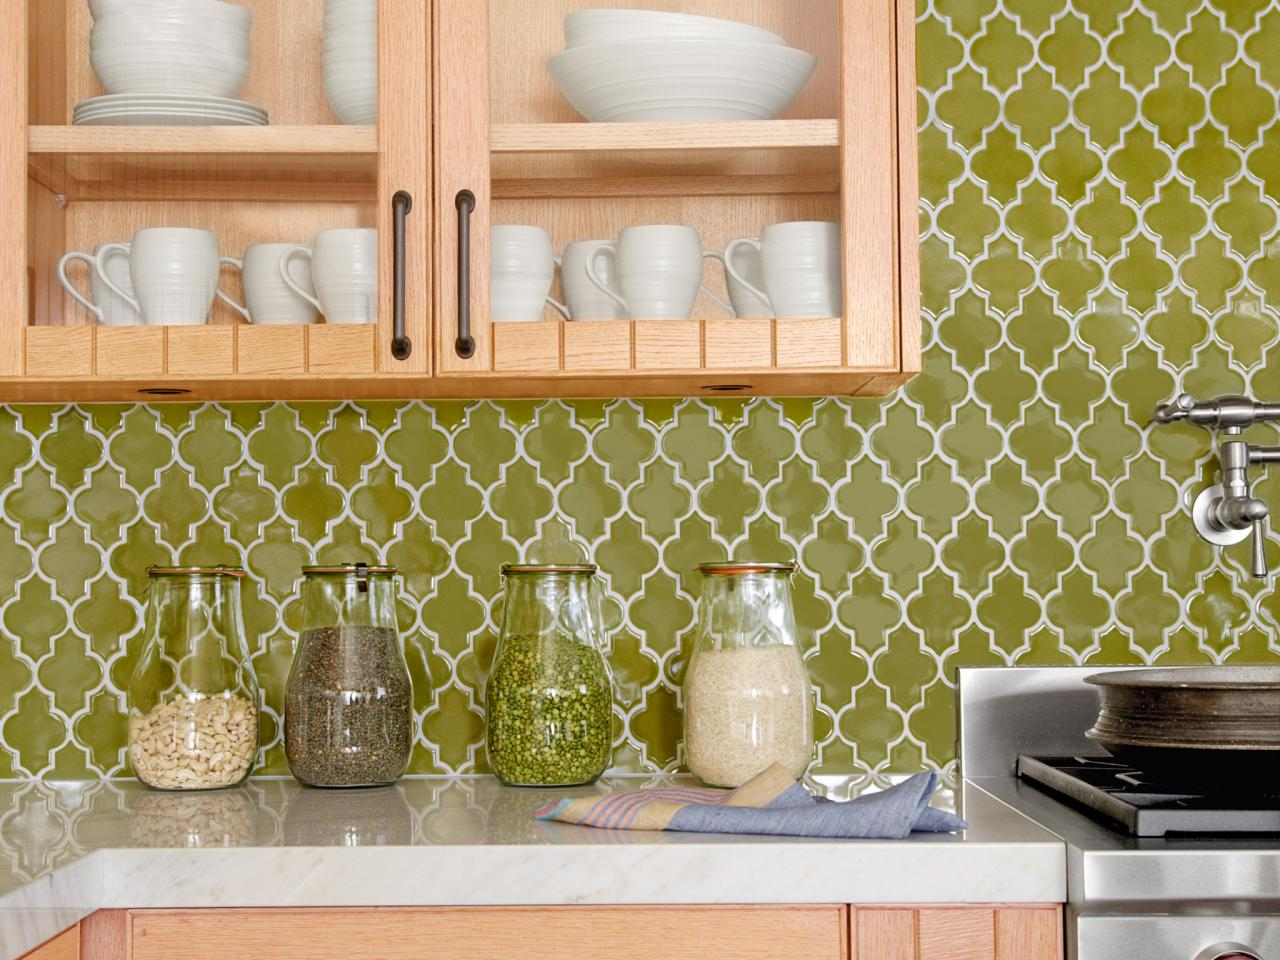 cool kitchen backsplash ideas: pictures & tips from hgtv | hgtv